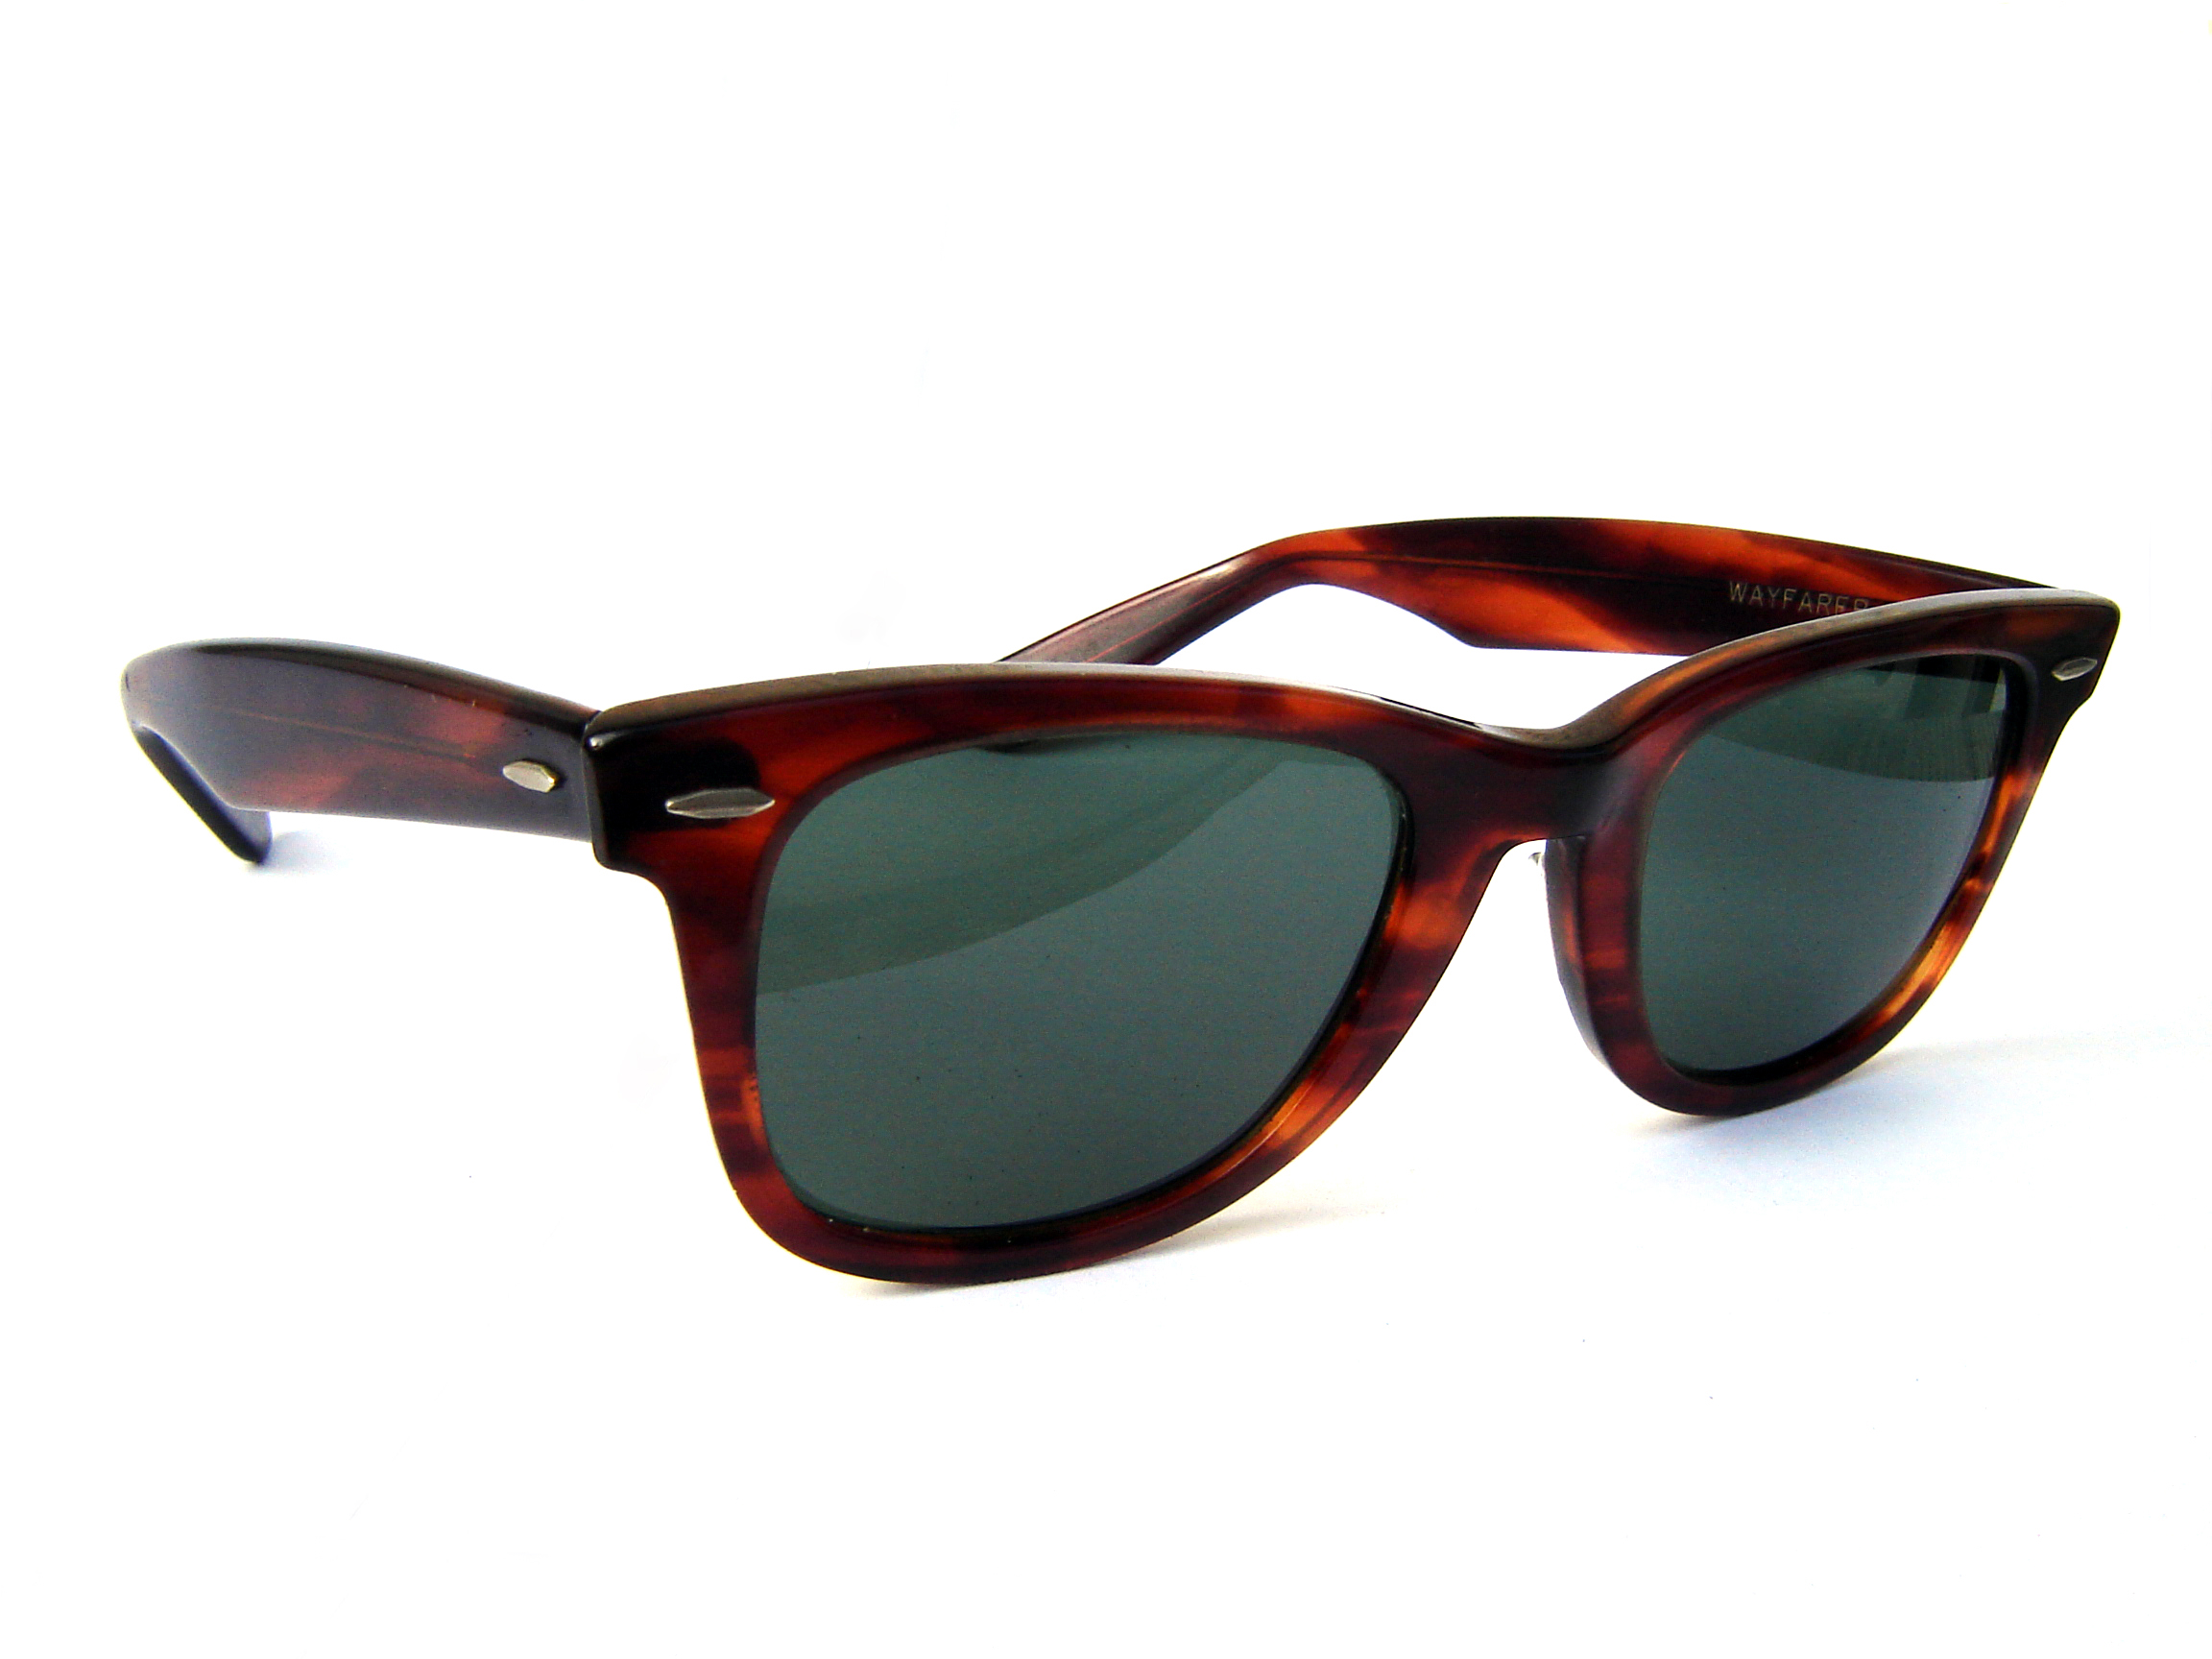 Wiki Ray Ban Wayfarer Wayfarer Ray Bans On Sale